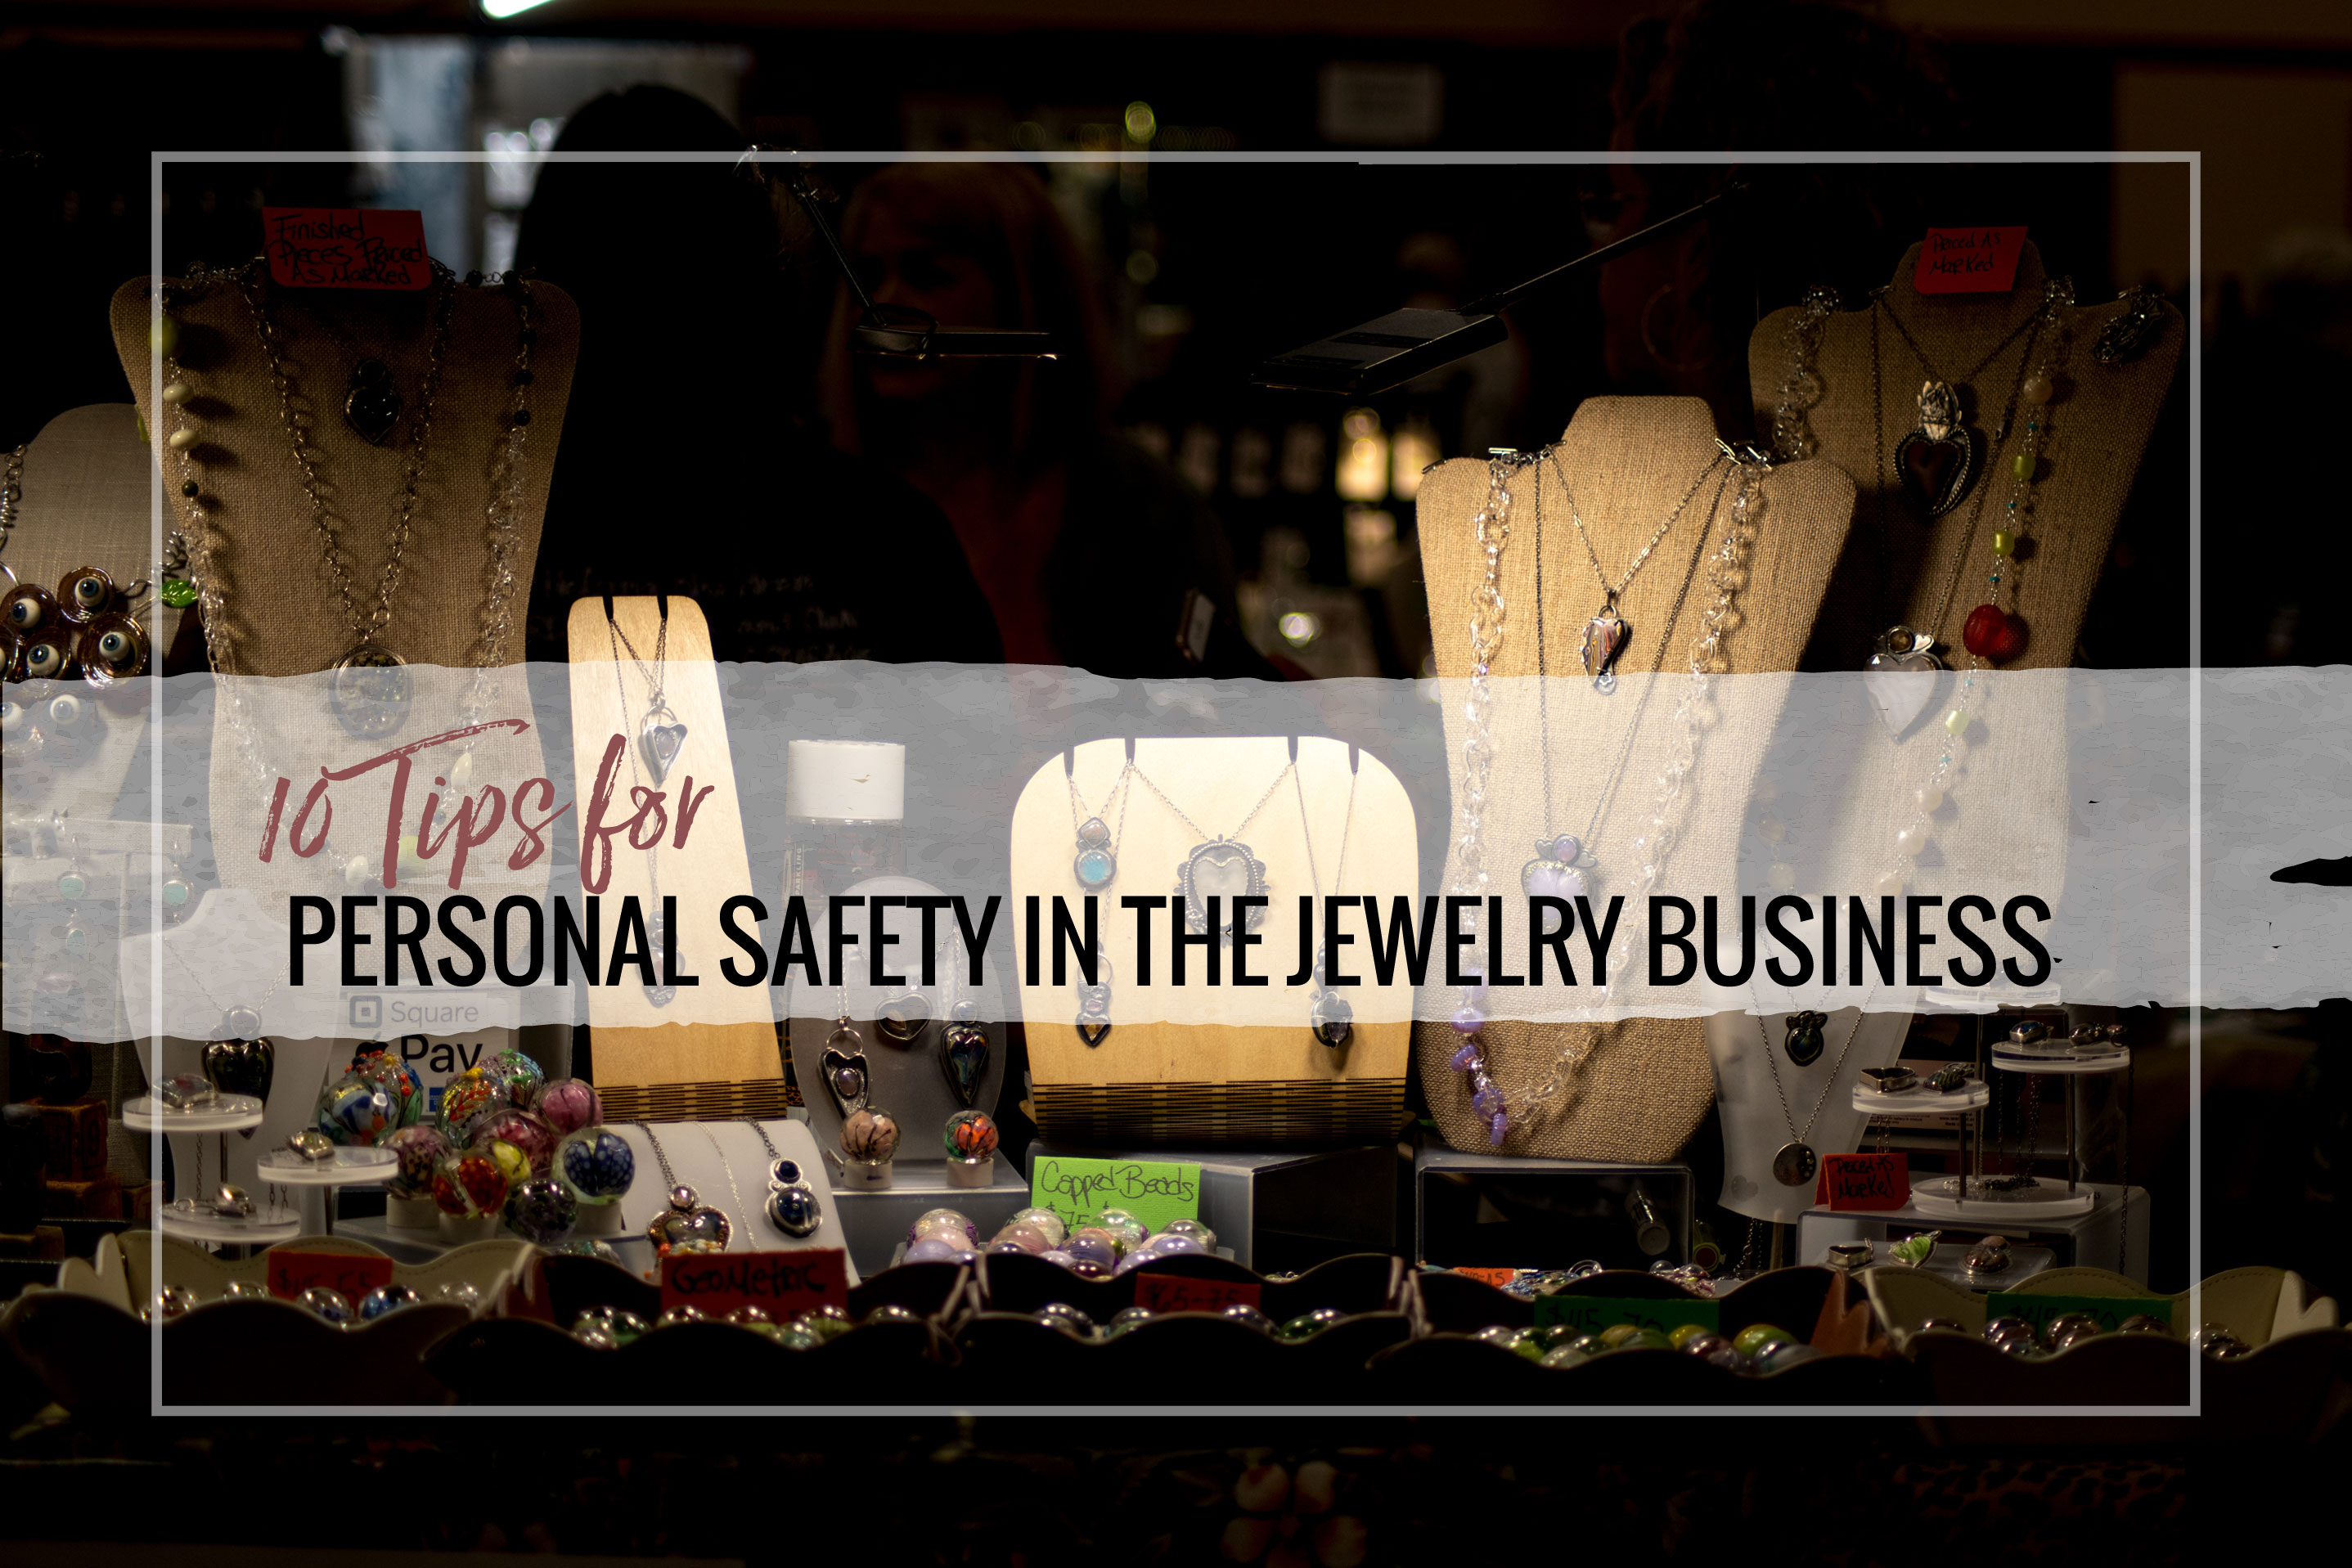 Personal safety in the jewelry business is an important issue. Use these tips to keep you and your inventory safe at home and on the road.